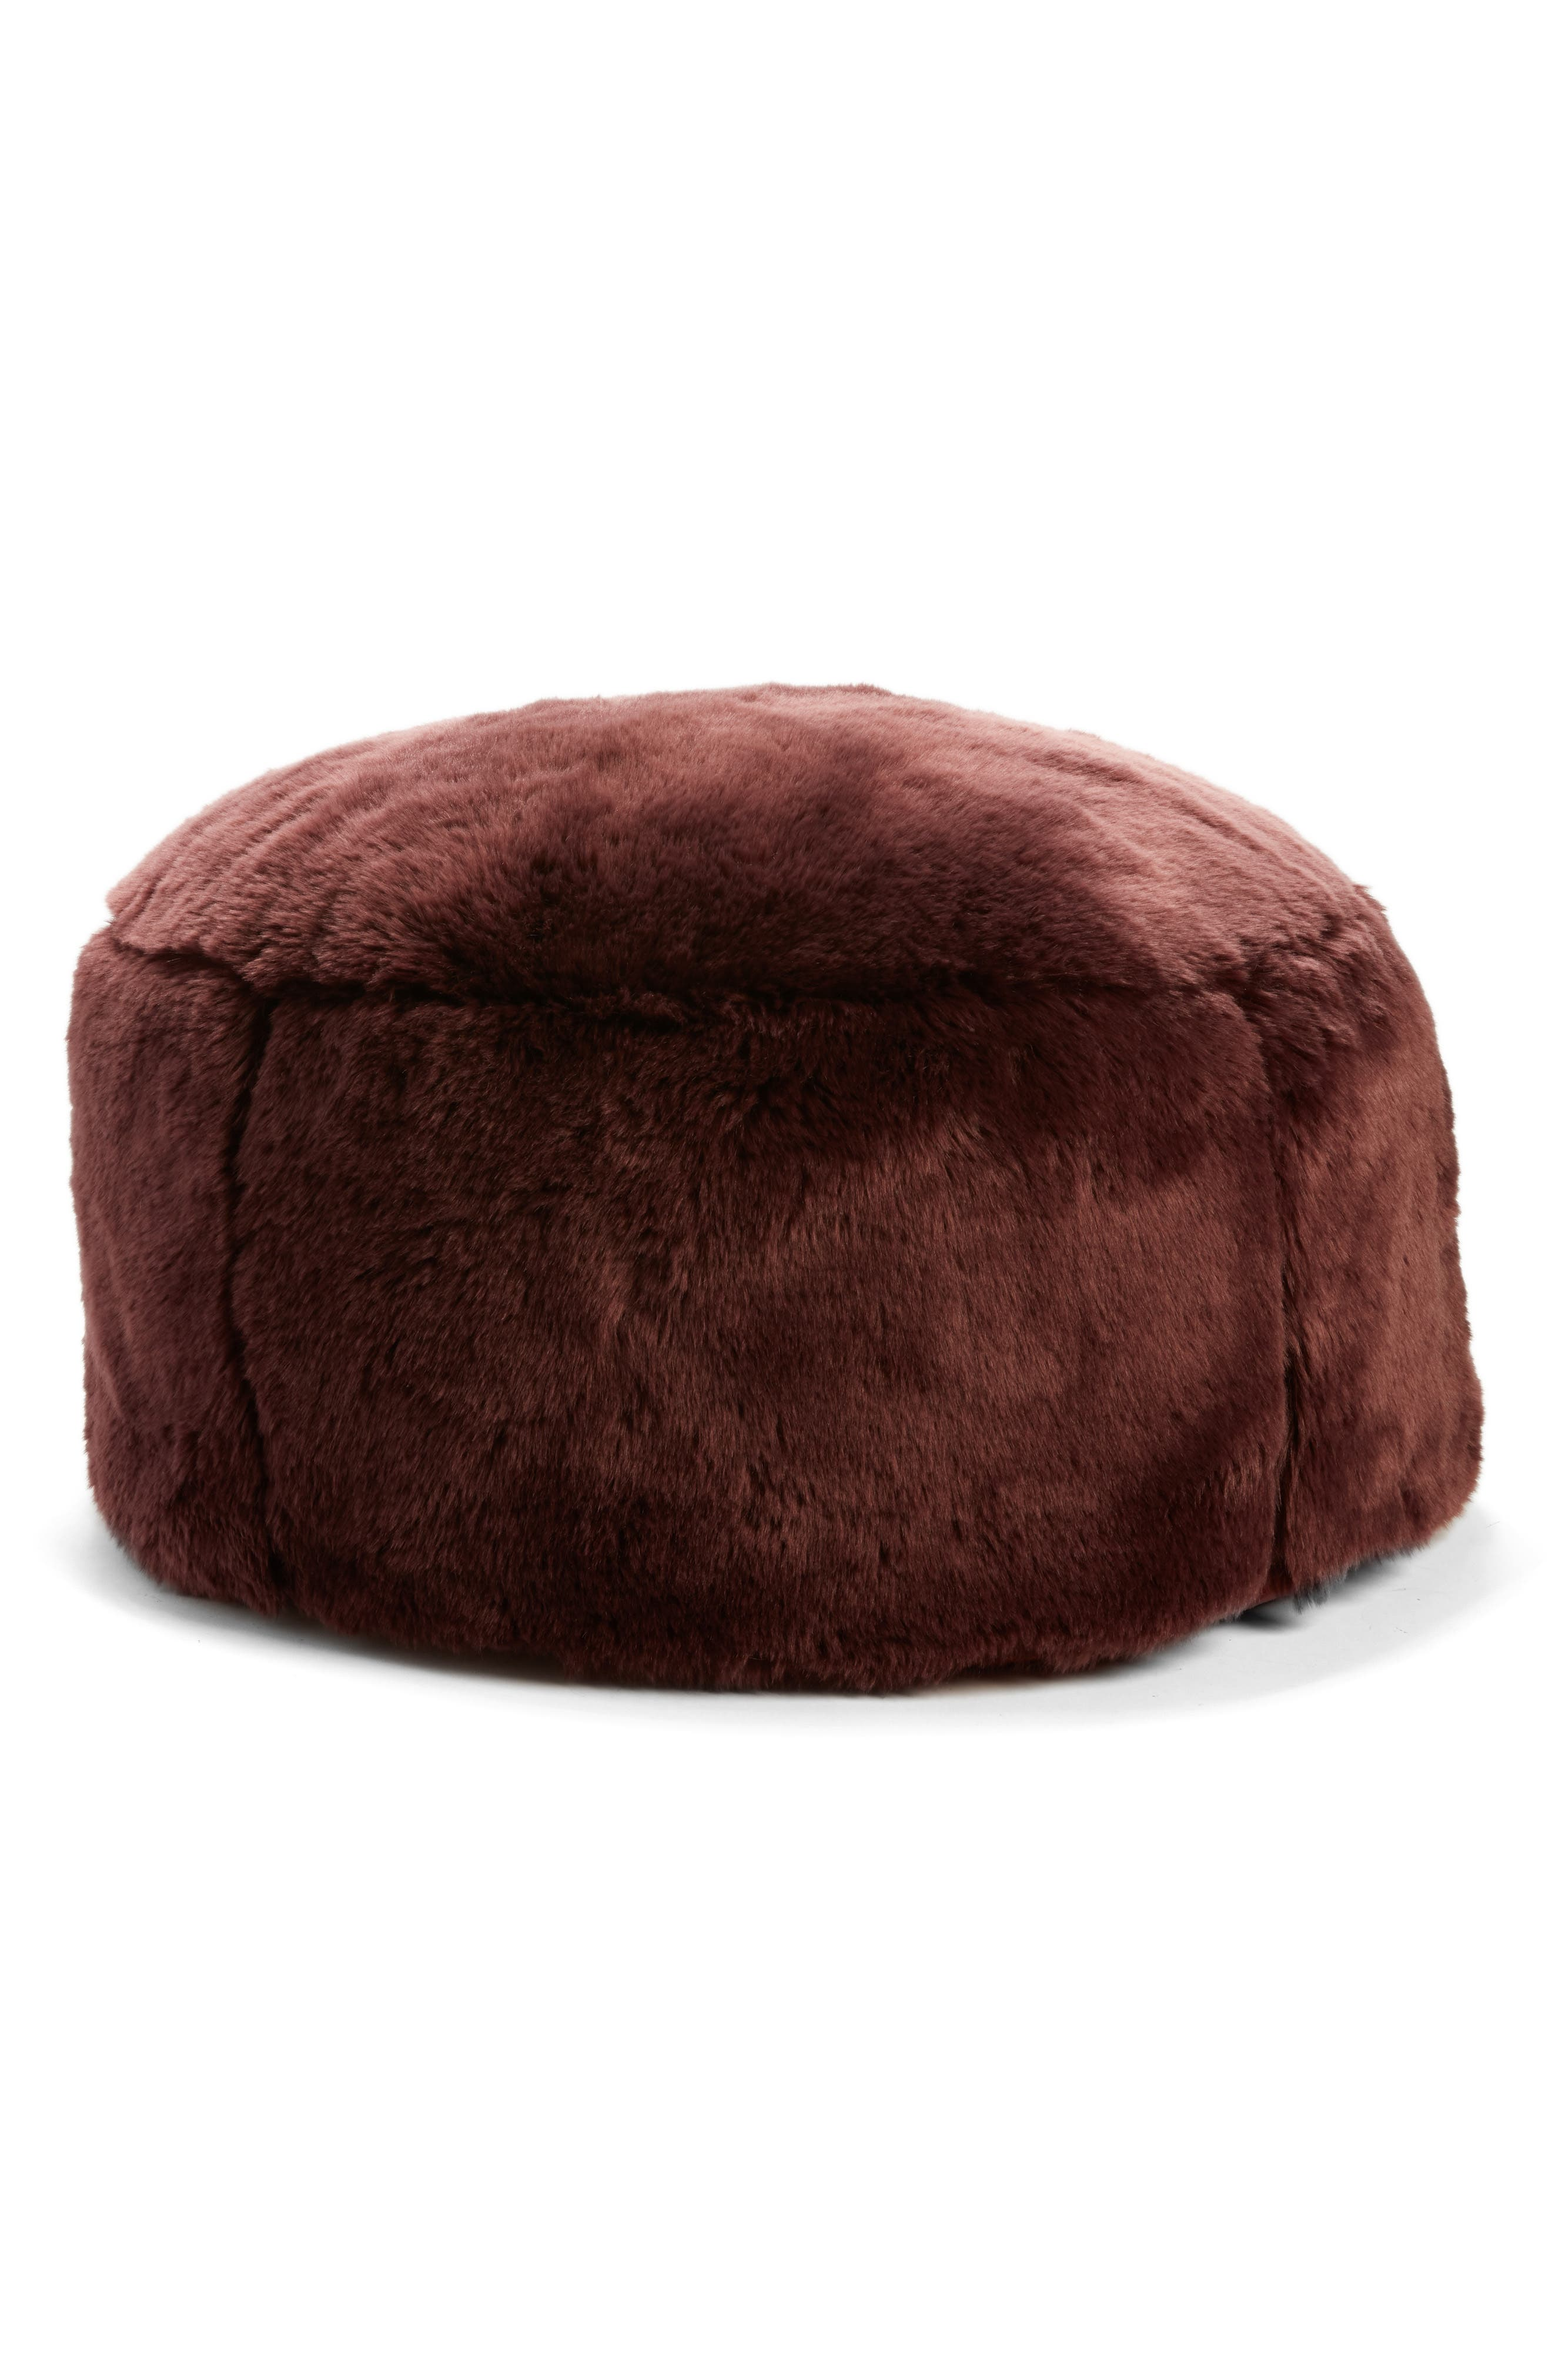 NORDSTROM AT HOME Cuddle Up Faux Fur Drum Pouf, Main, color, 931